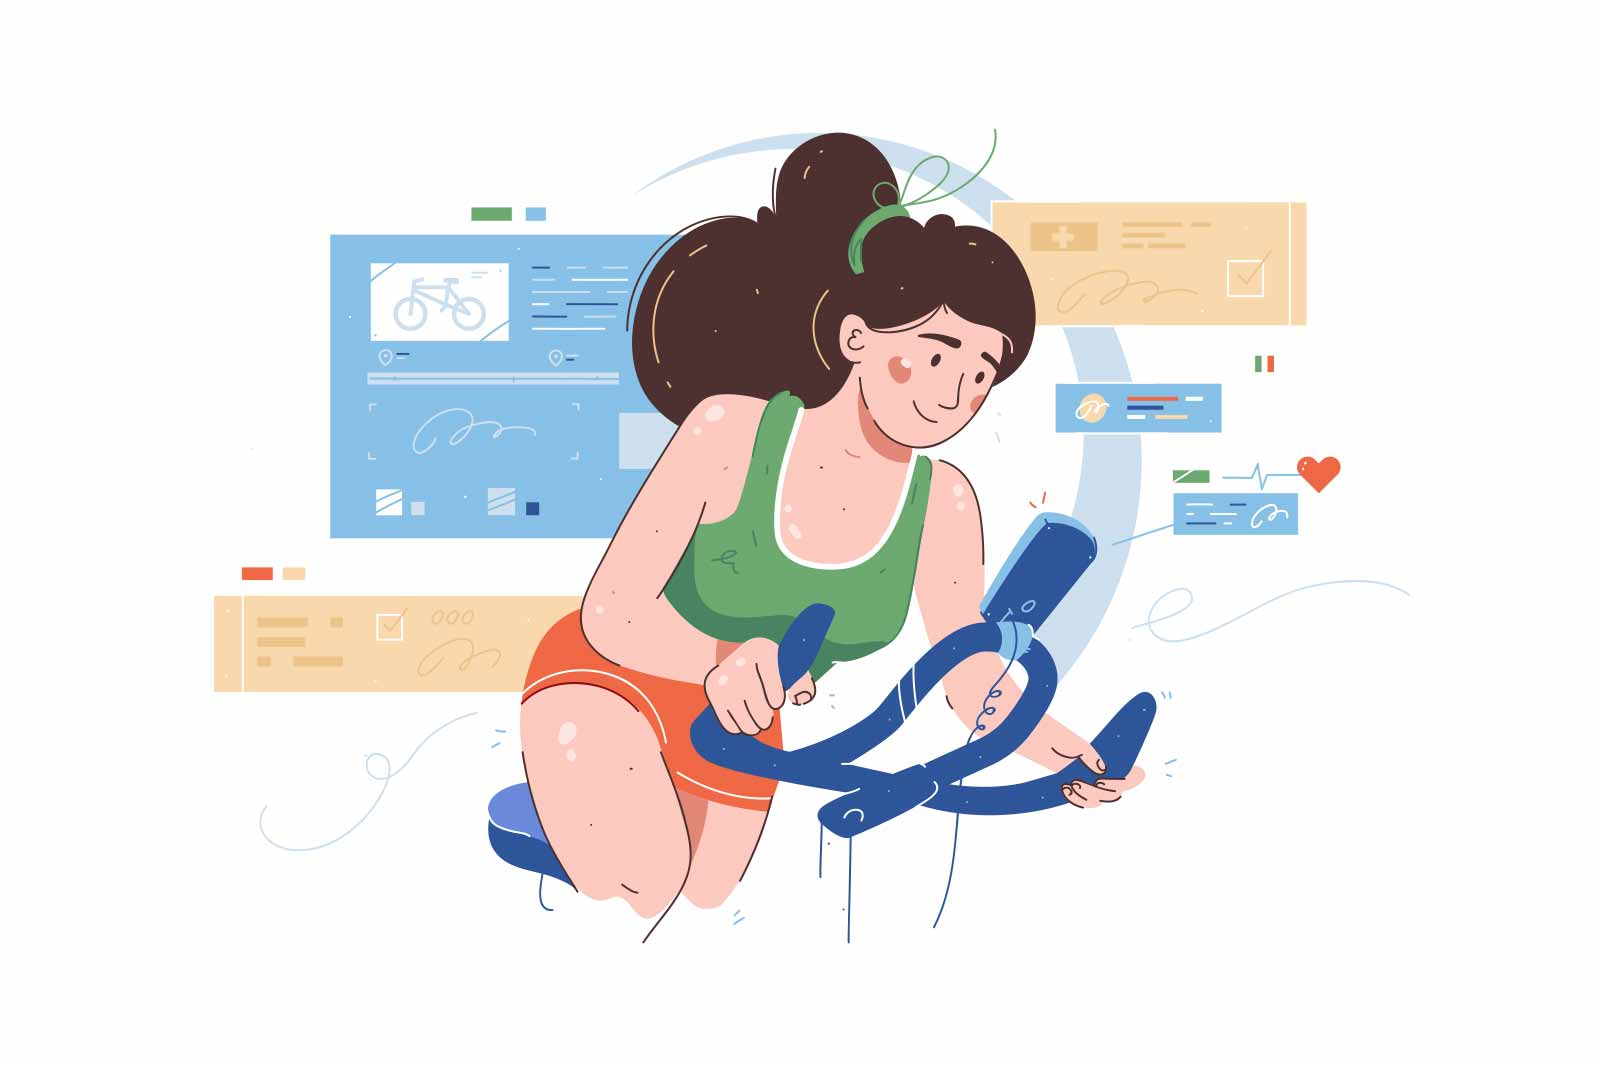 Exercise stationery bike and training apparatus vector illustration. Girl train on vehicle flat style. Sport, activity, workout concept